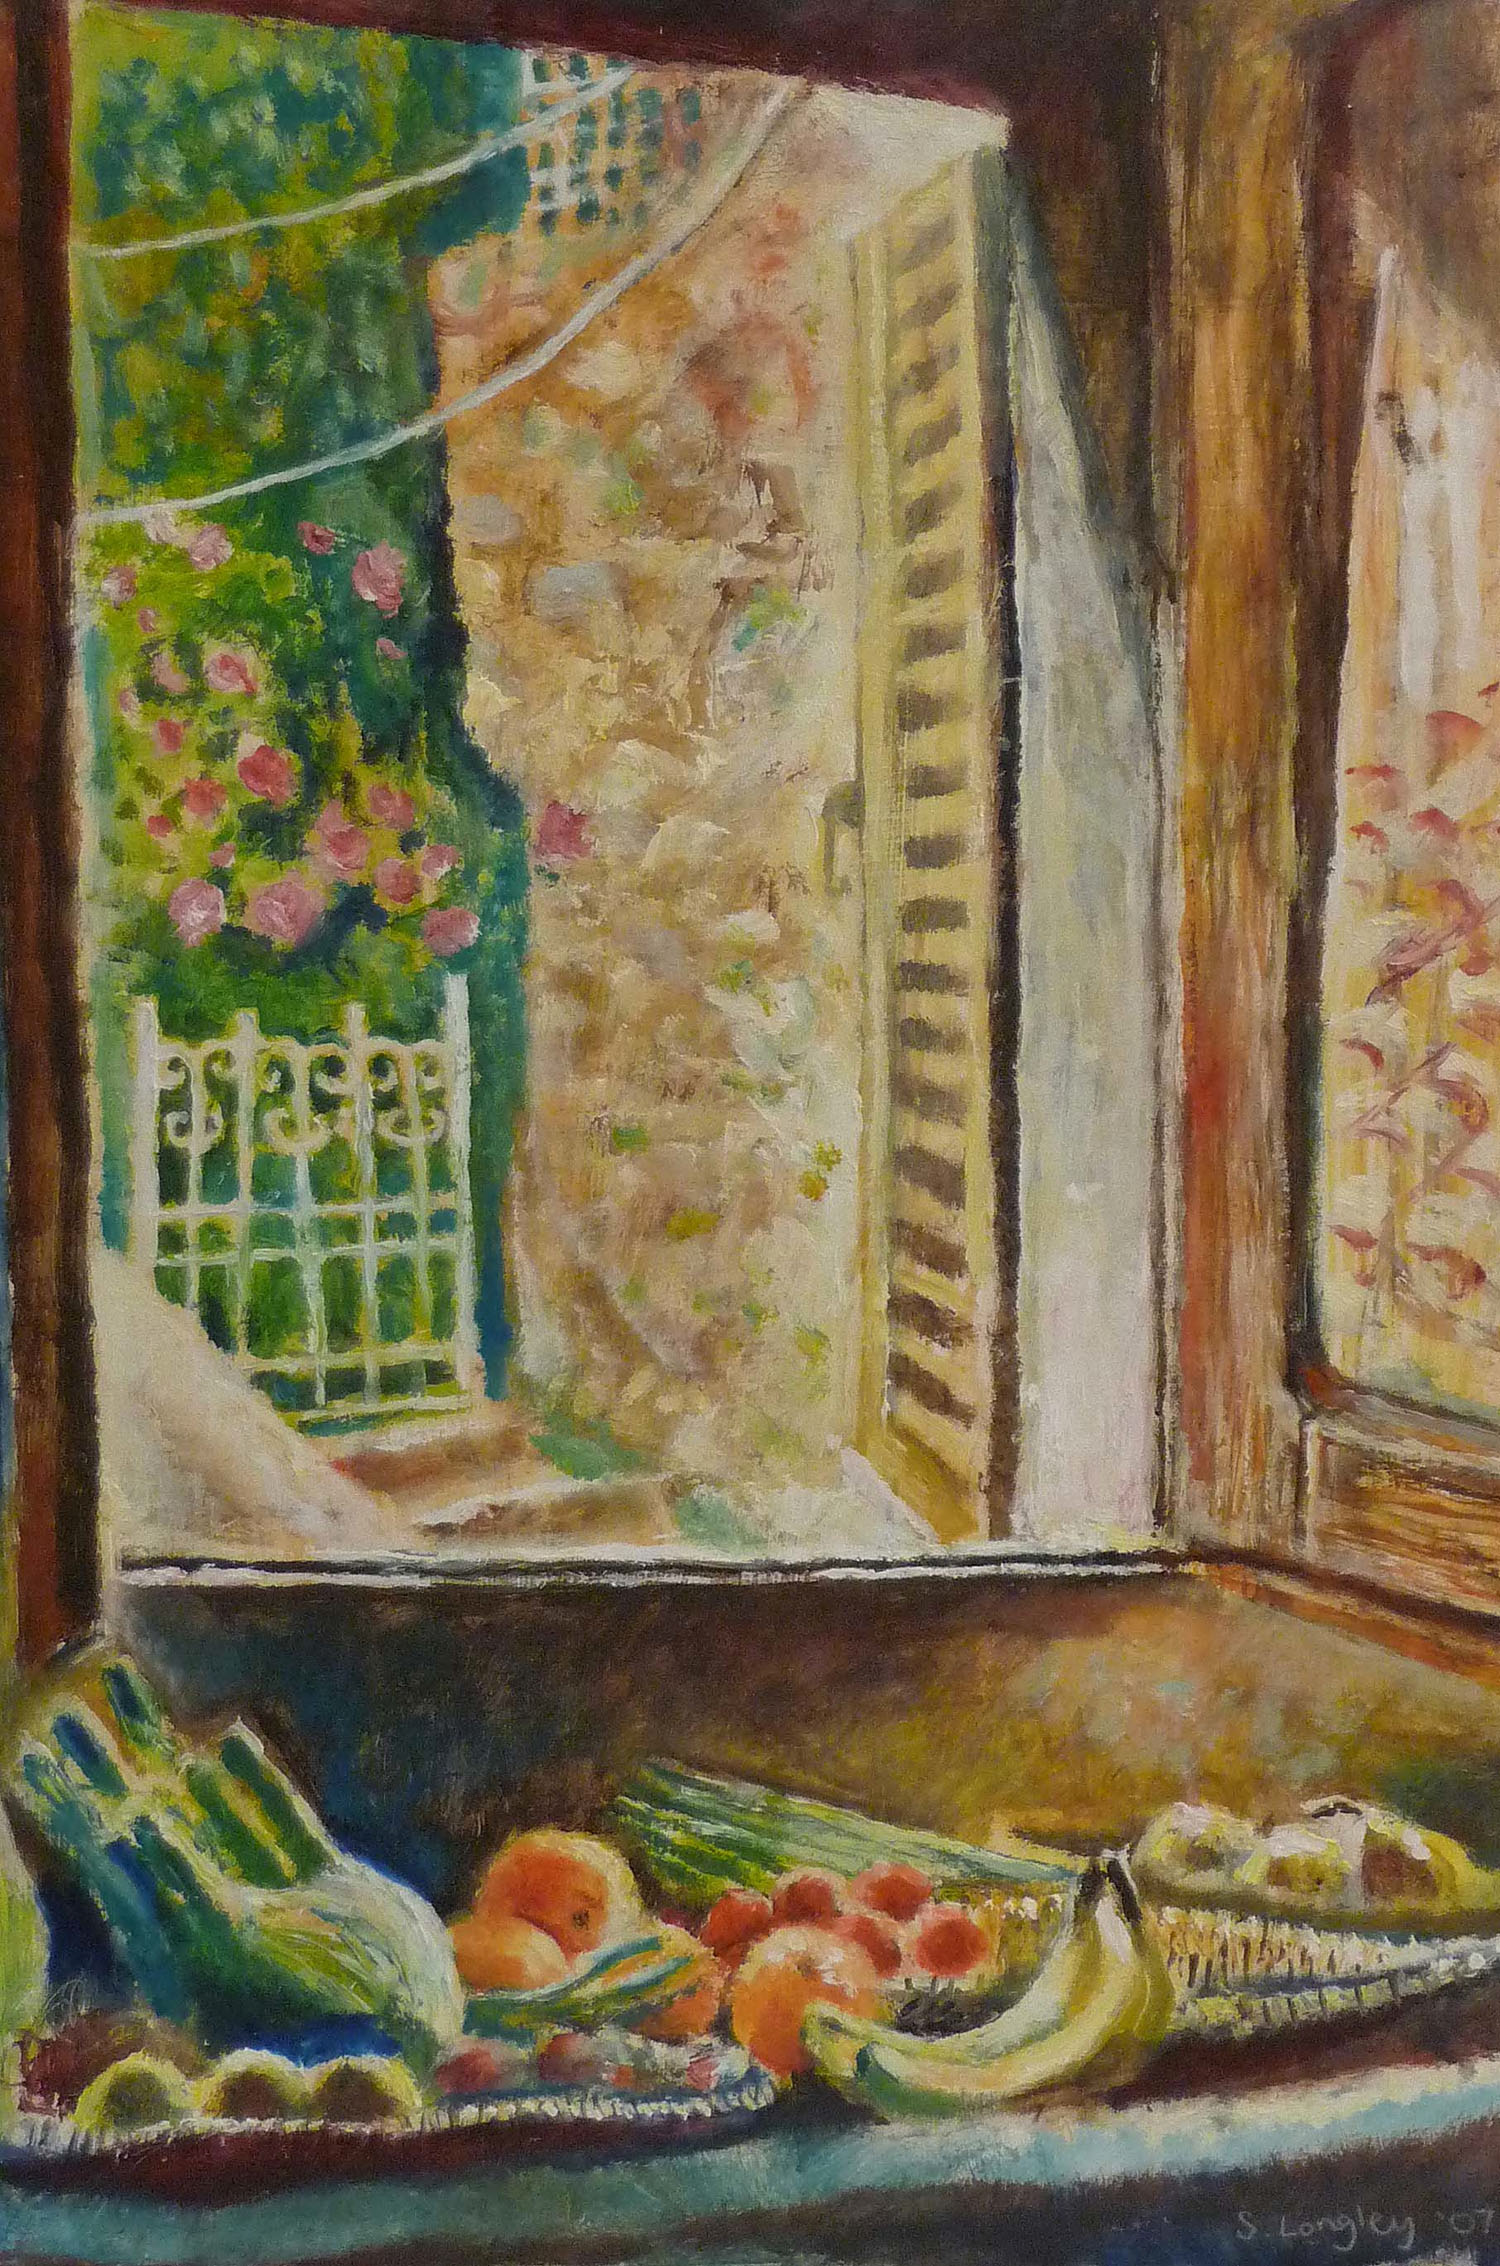 Sarah Longley_-_Kitchen Window_oil on board_45 x 31cm.jpg